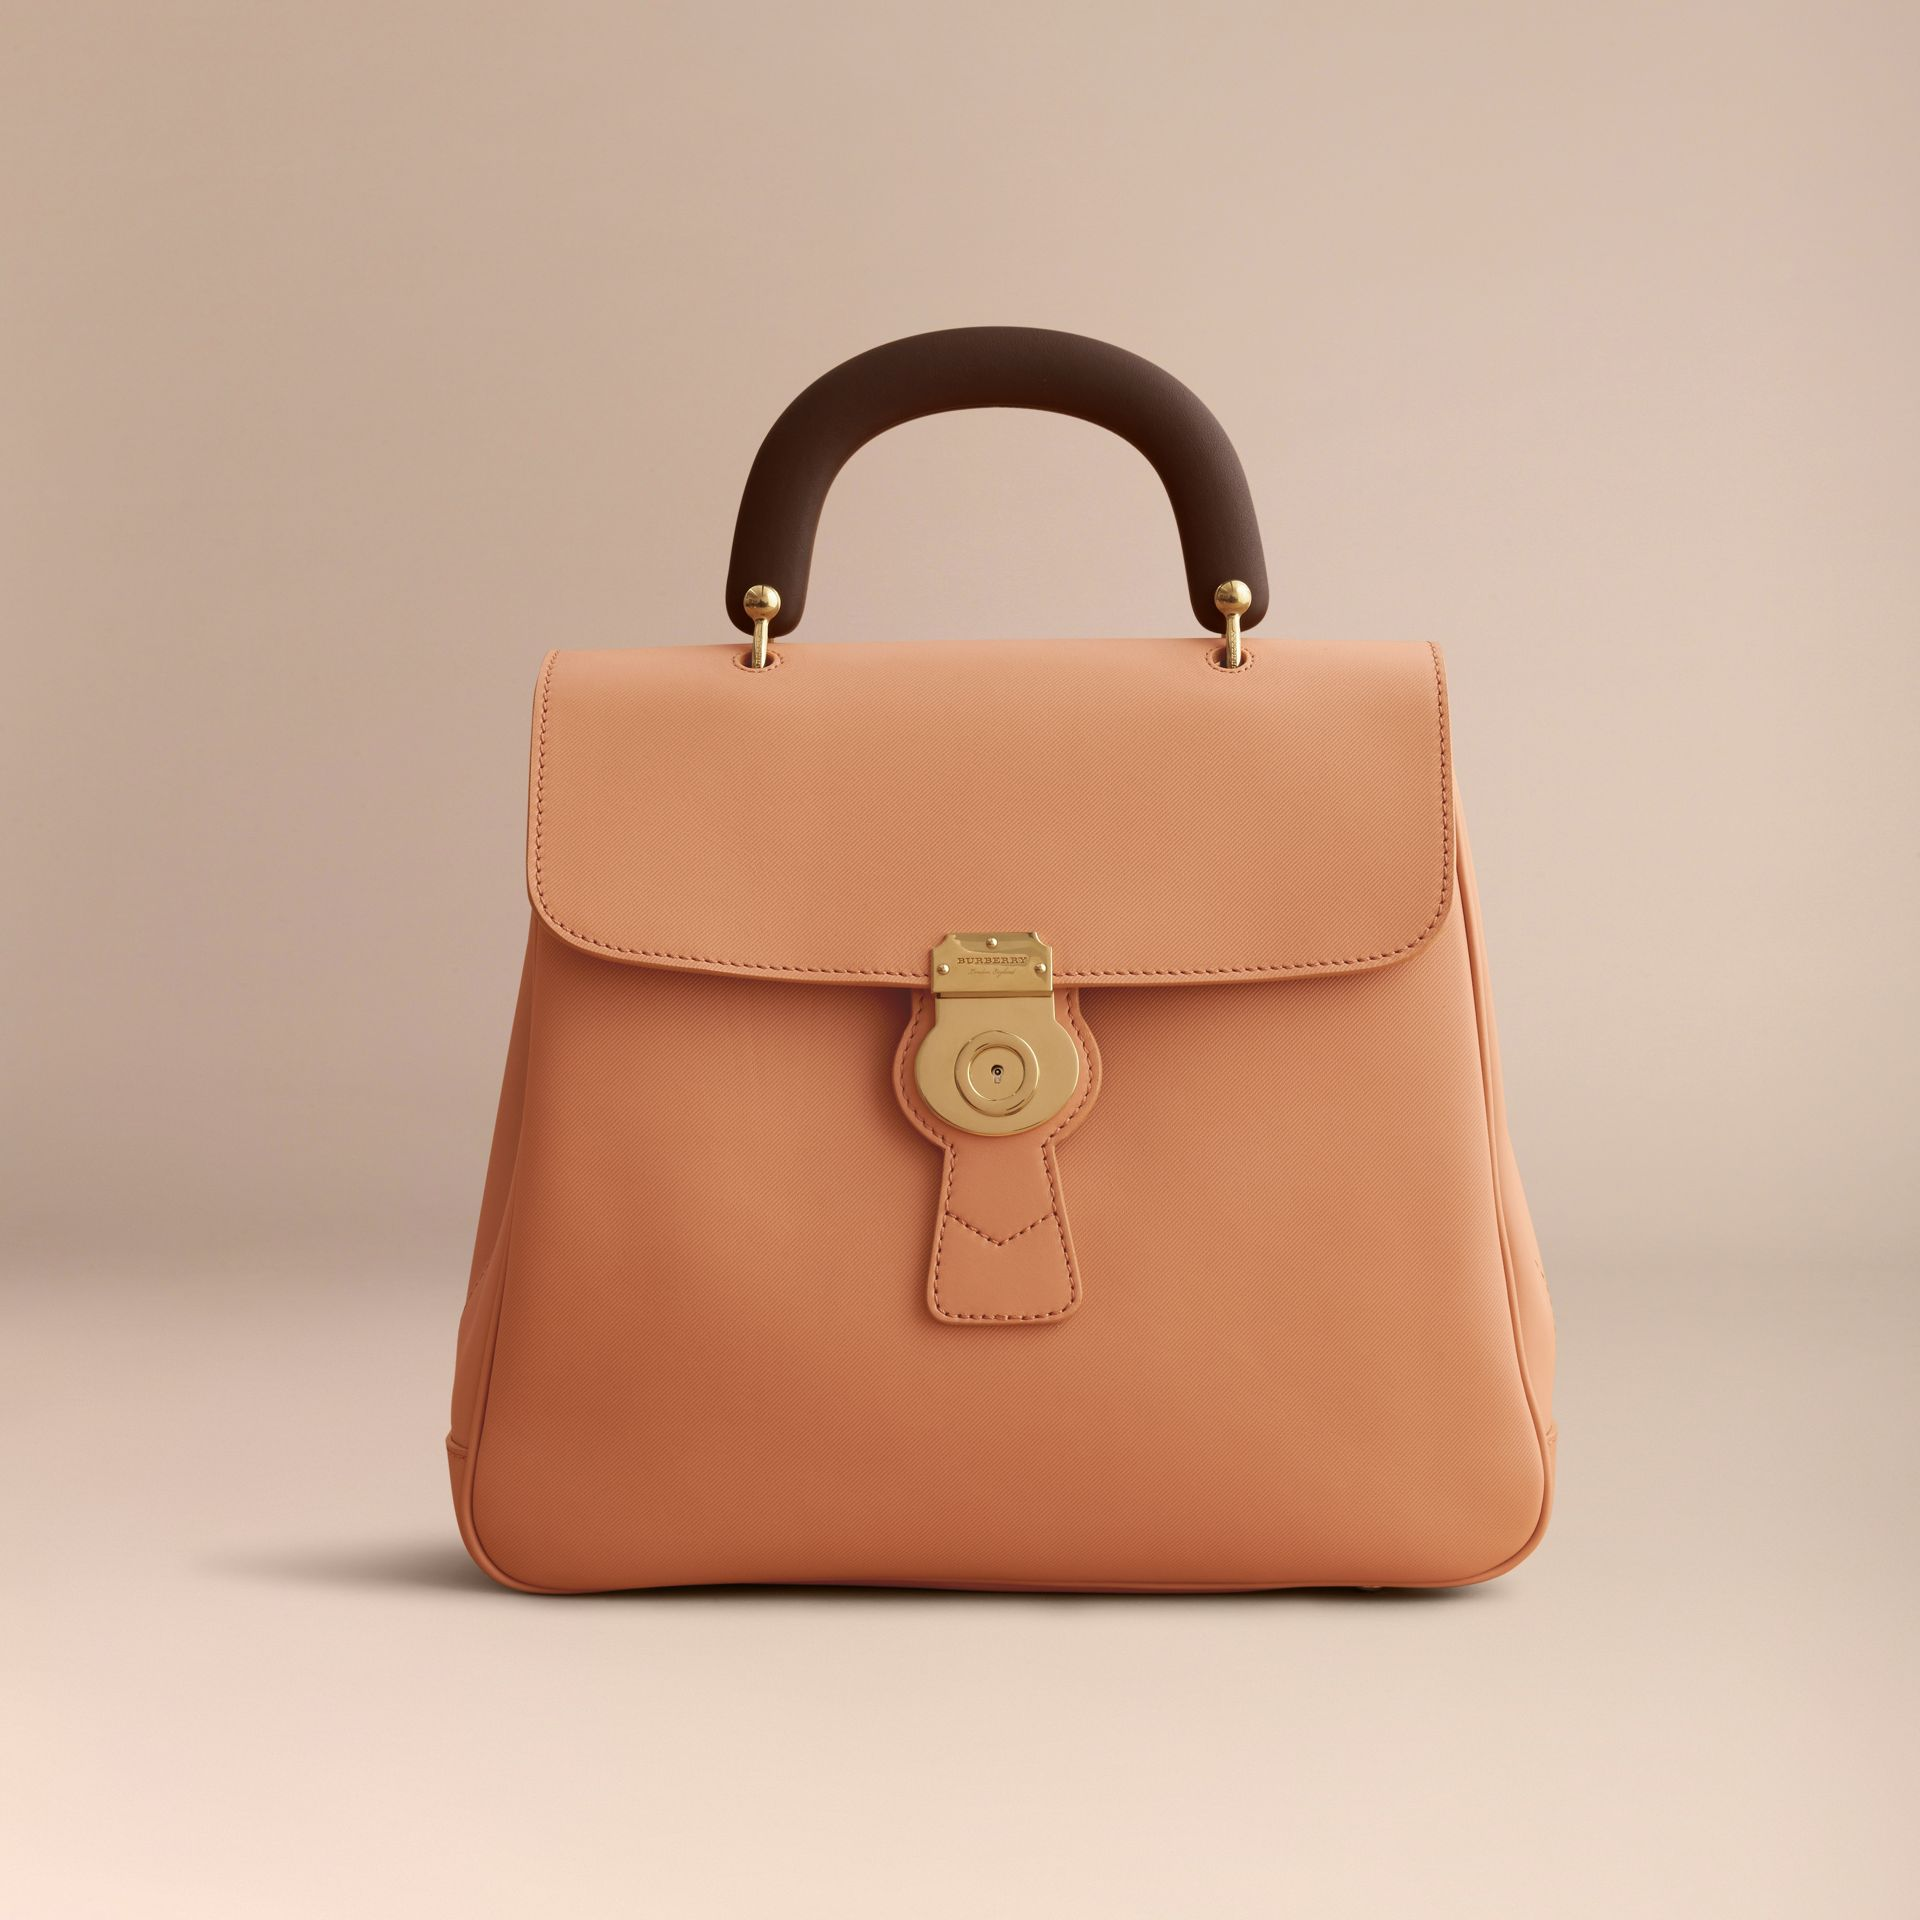 The Large DK88 Top Handle Bag in Pale Clementine - Women | Burberry United Kingdom - gallery image 7